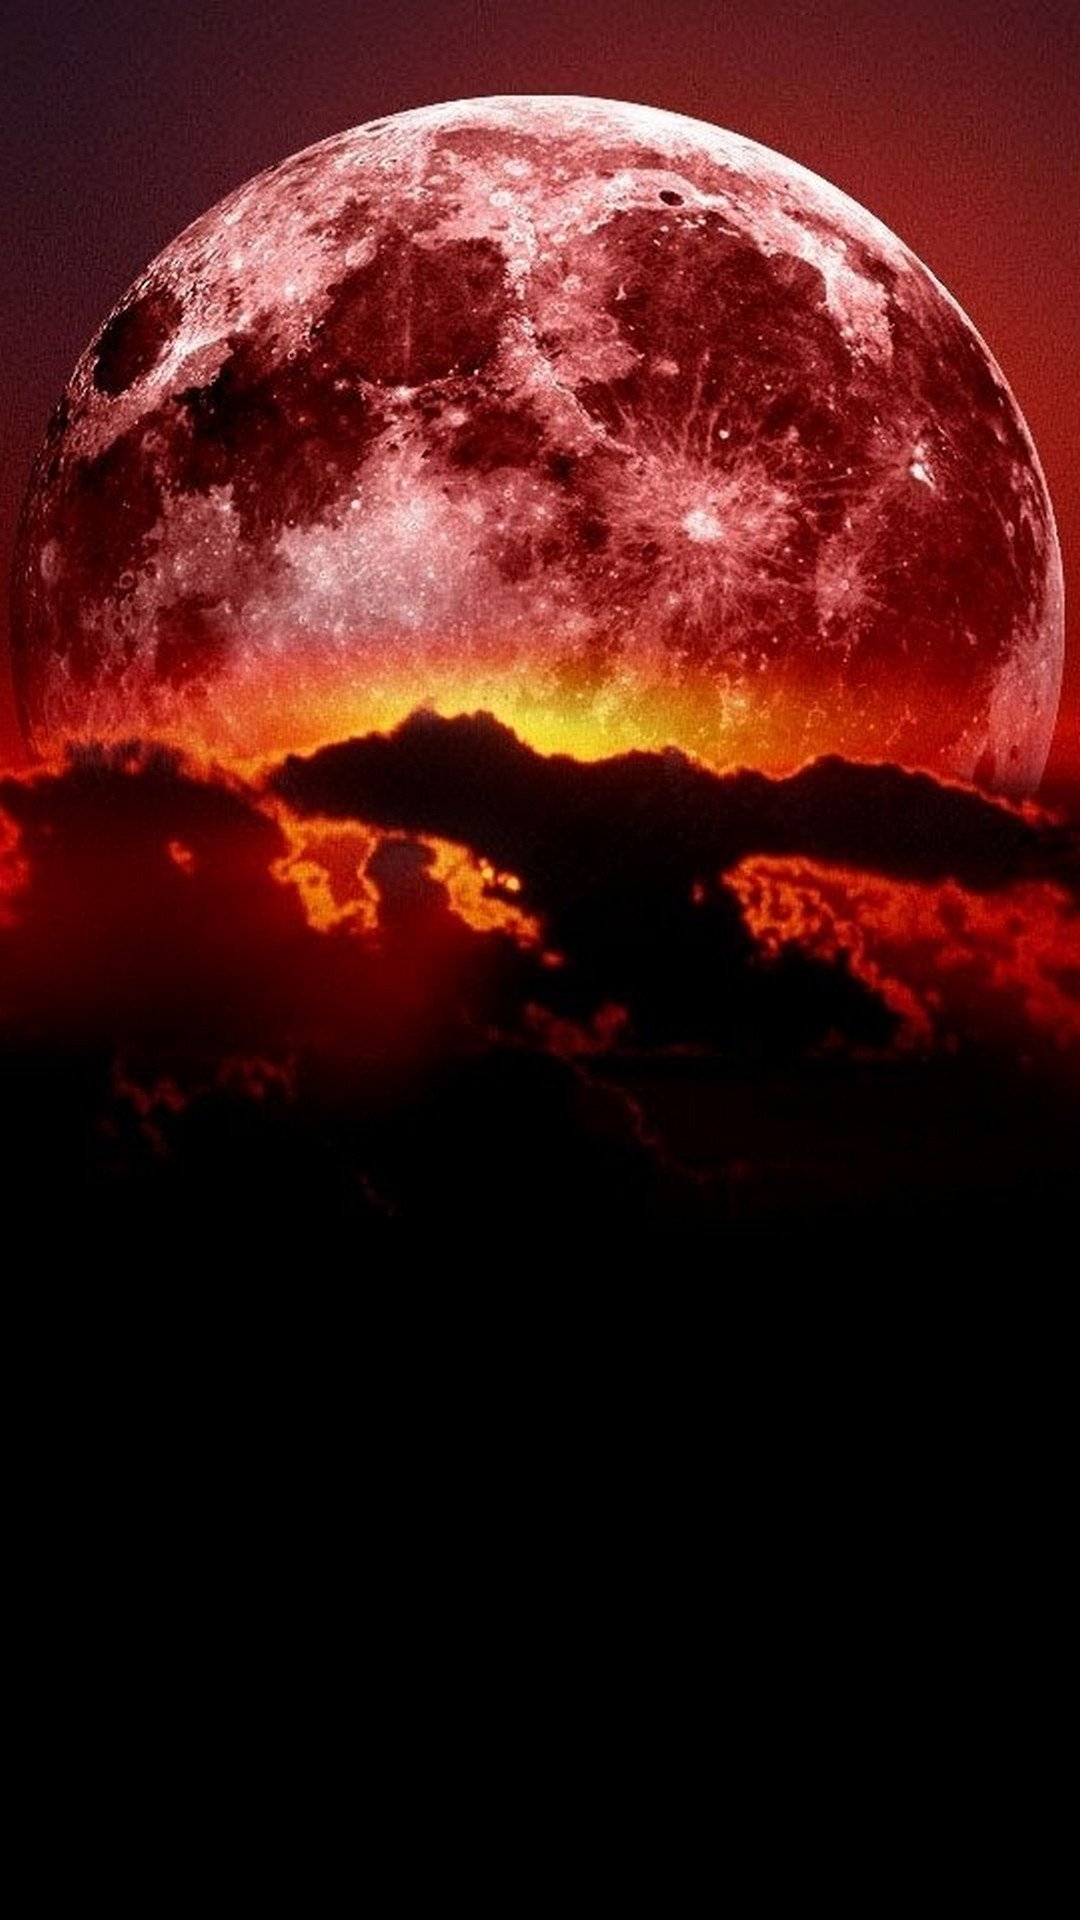 Super Blood Moon Wallpaper Android   2020 Android Wallpapers 1080x1920